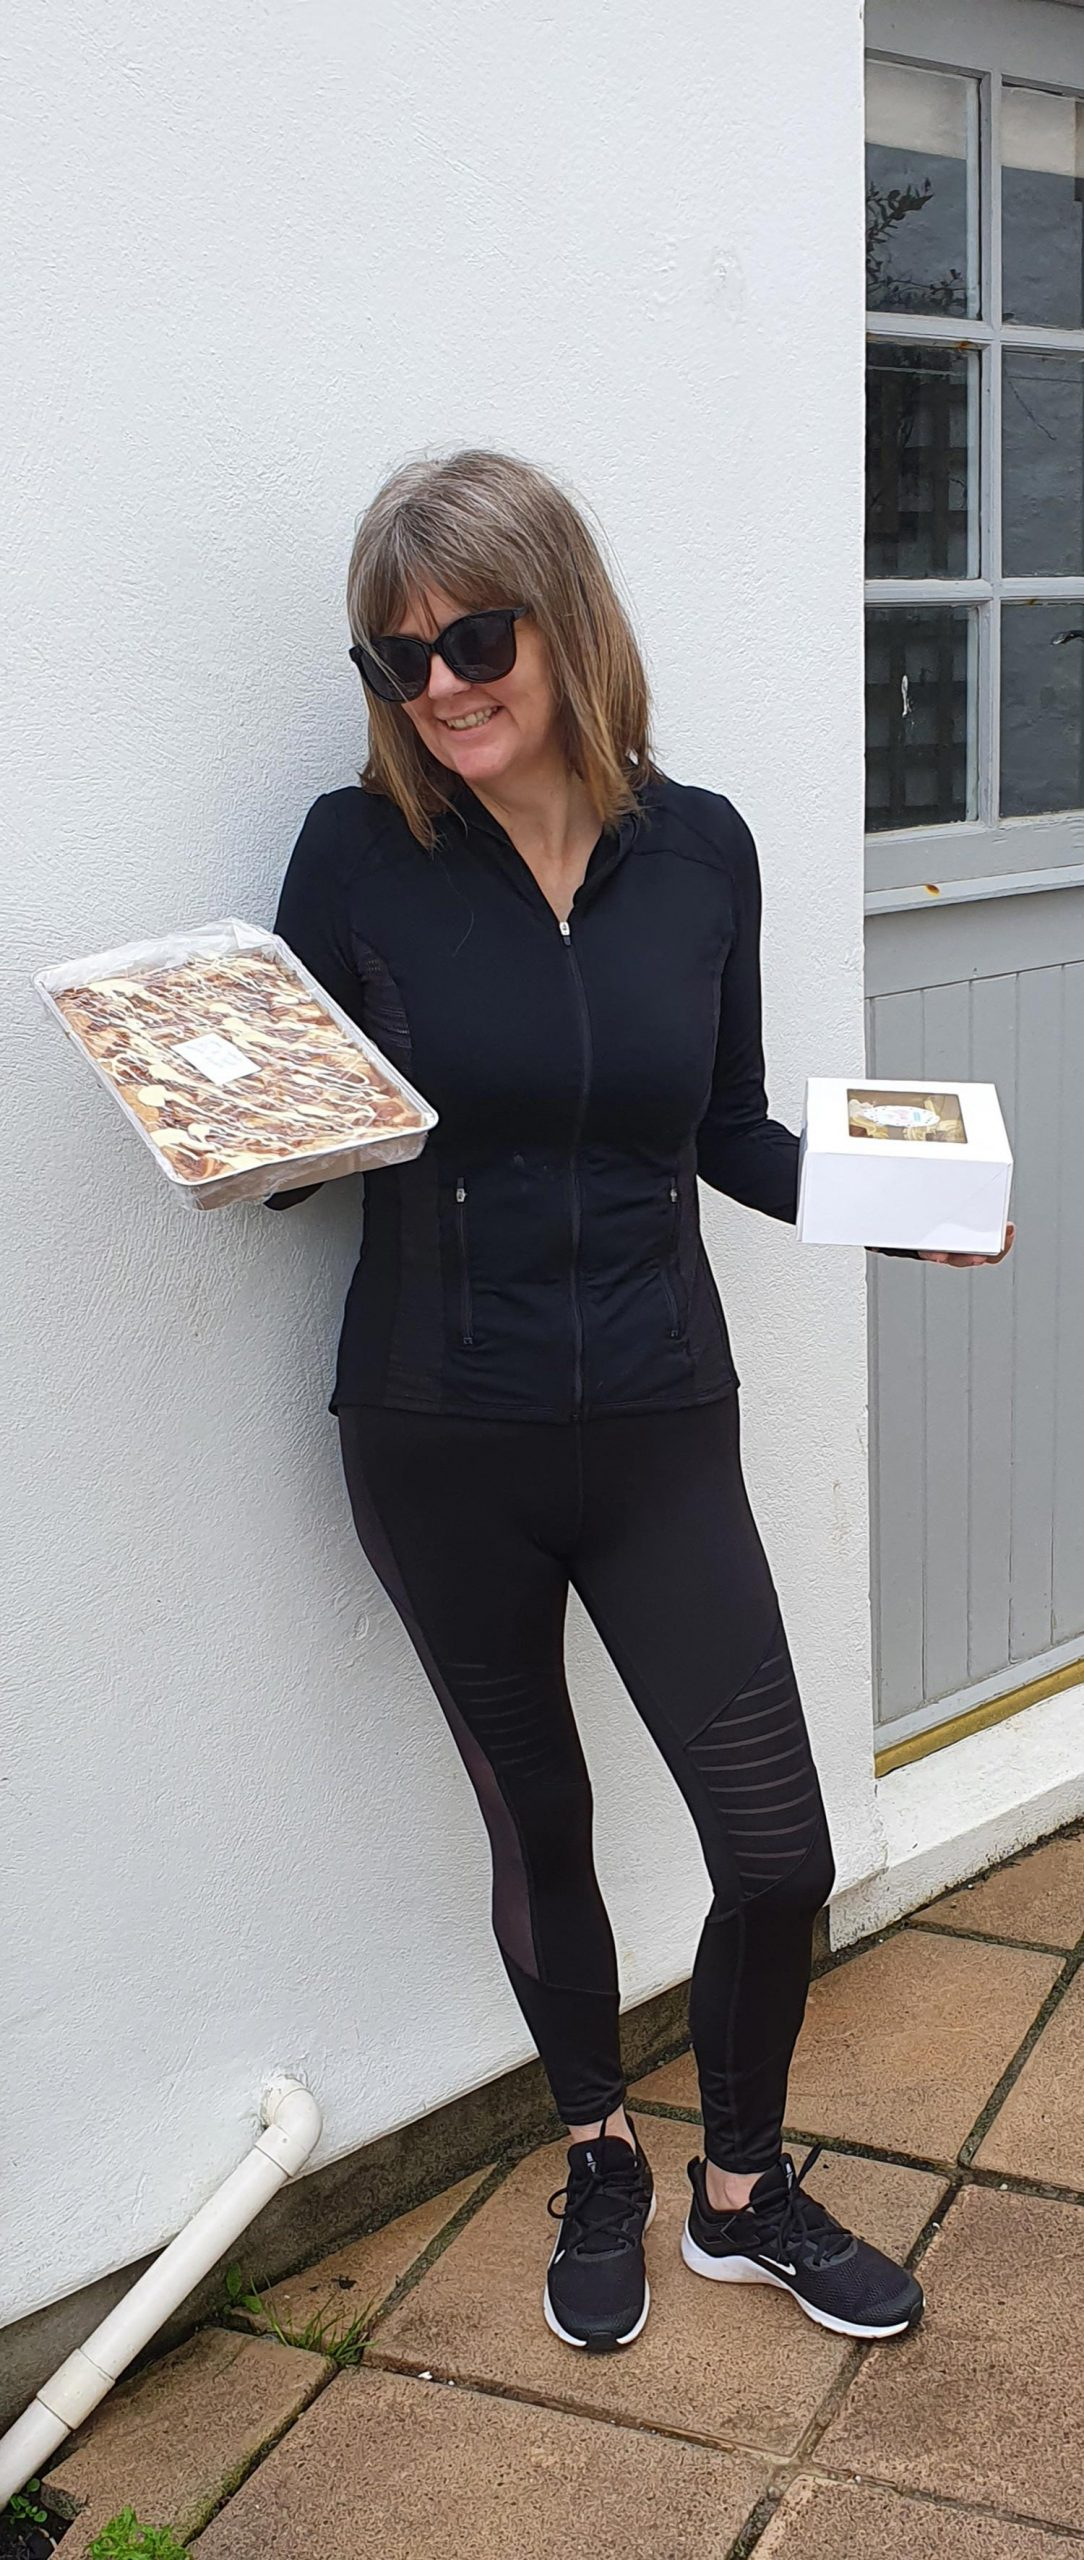 Lady holding boxes of food